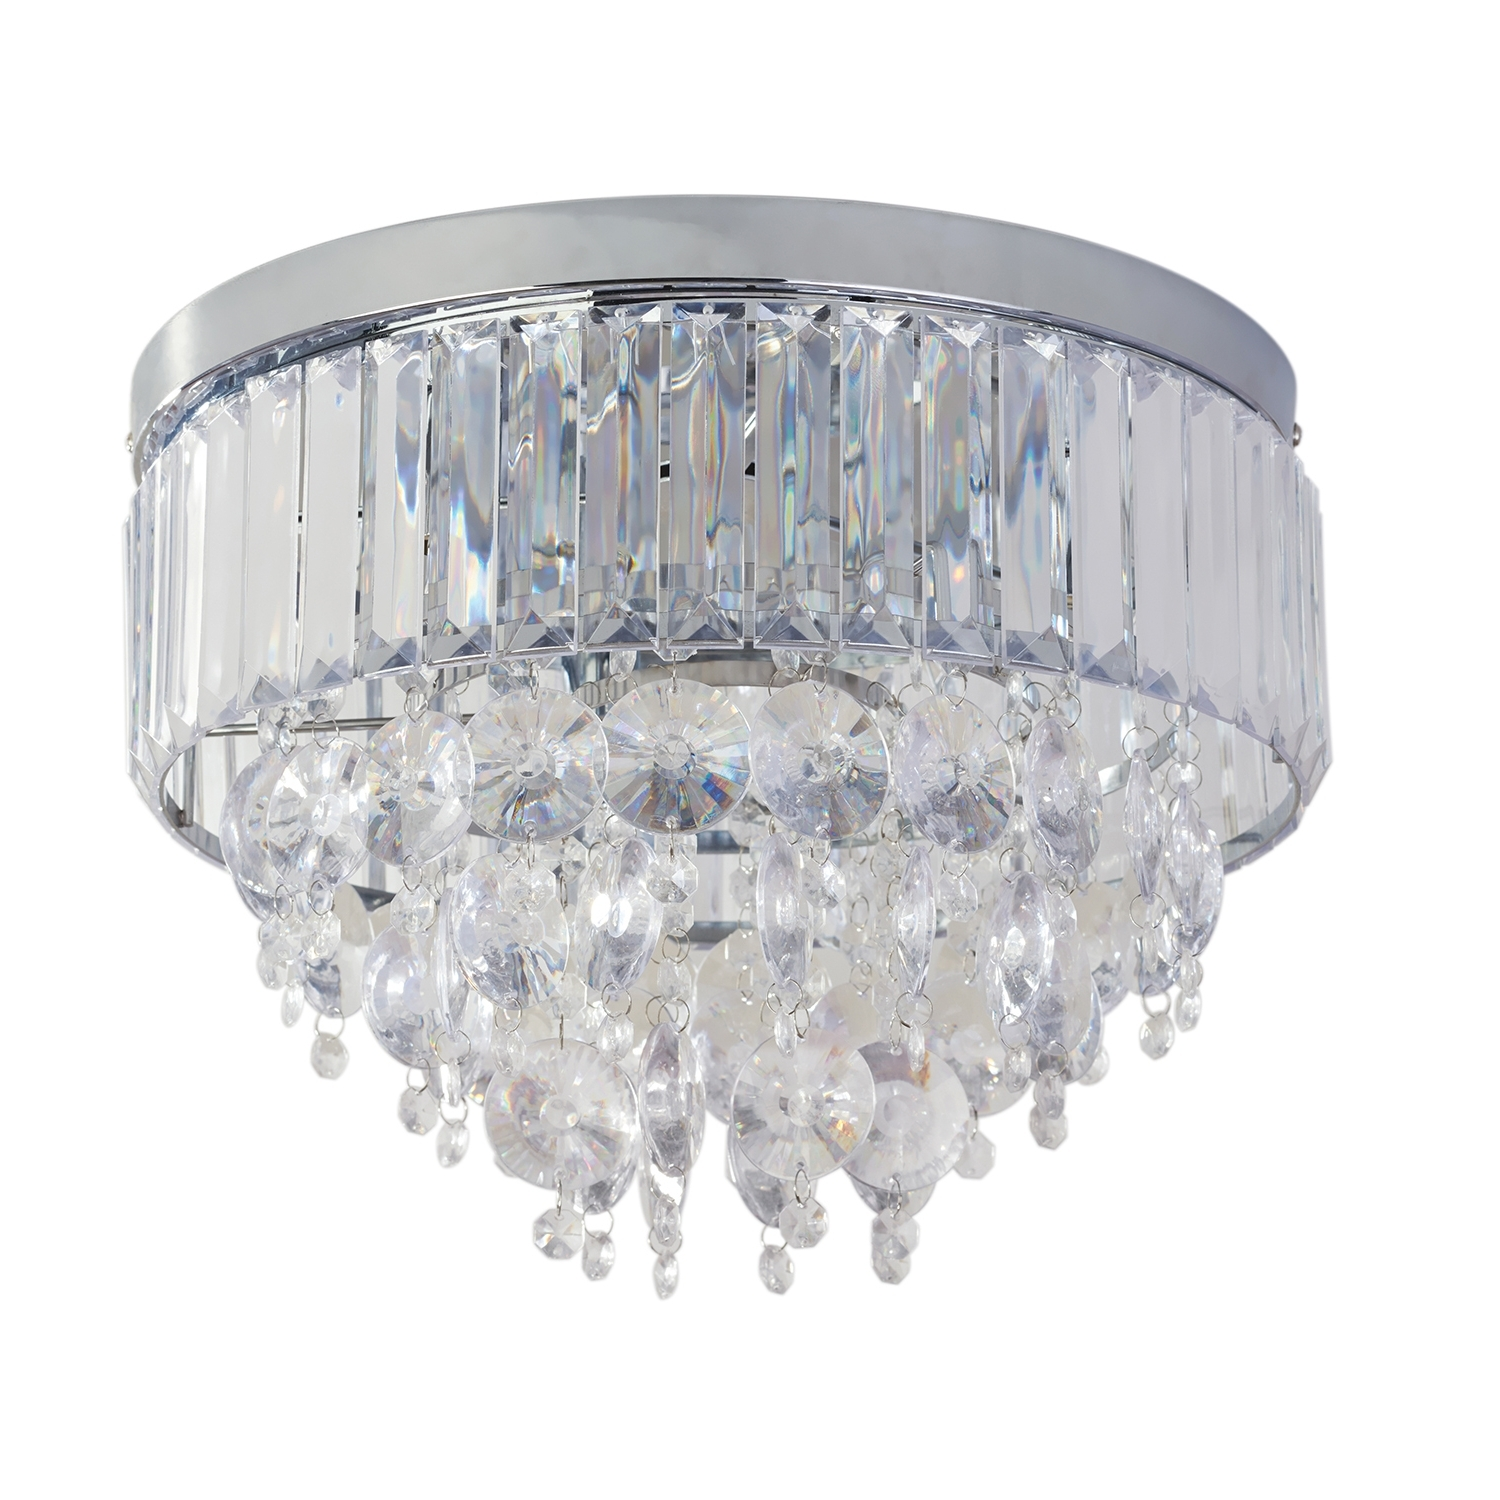 Flush Fitting Chandelier Throughout Well Liked Aviv Three Light Flush Fitting (View 7 of 20)